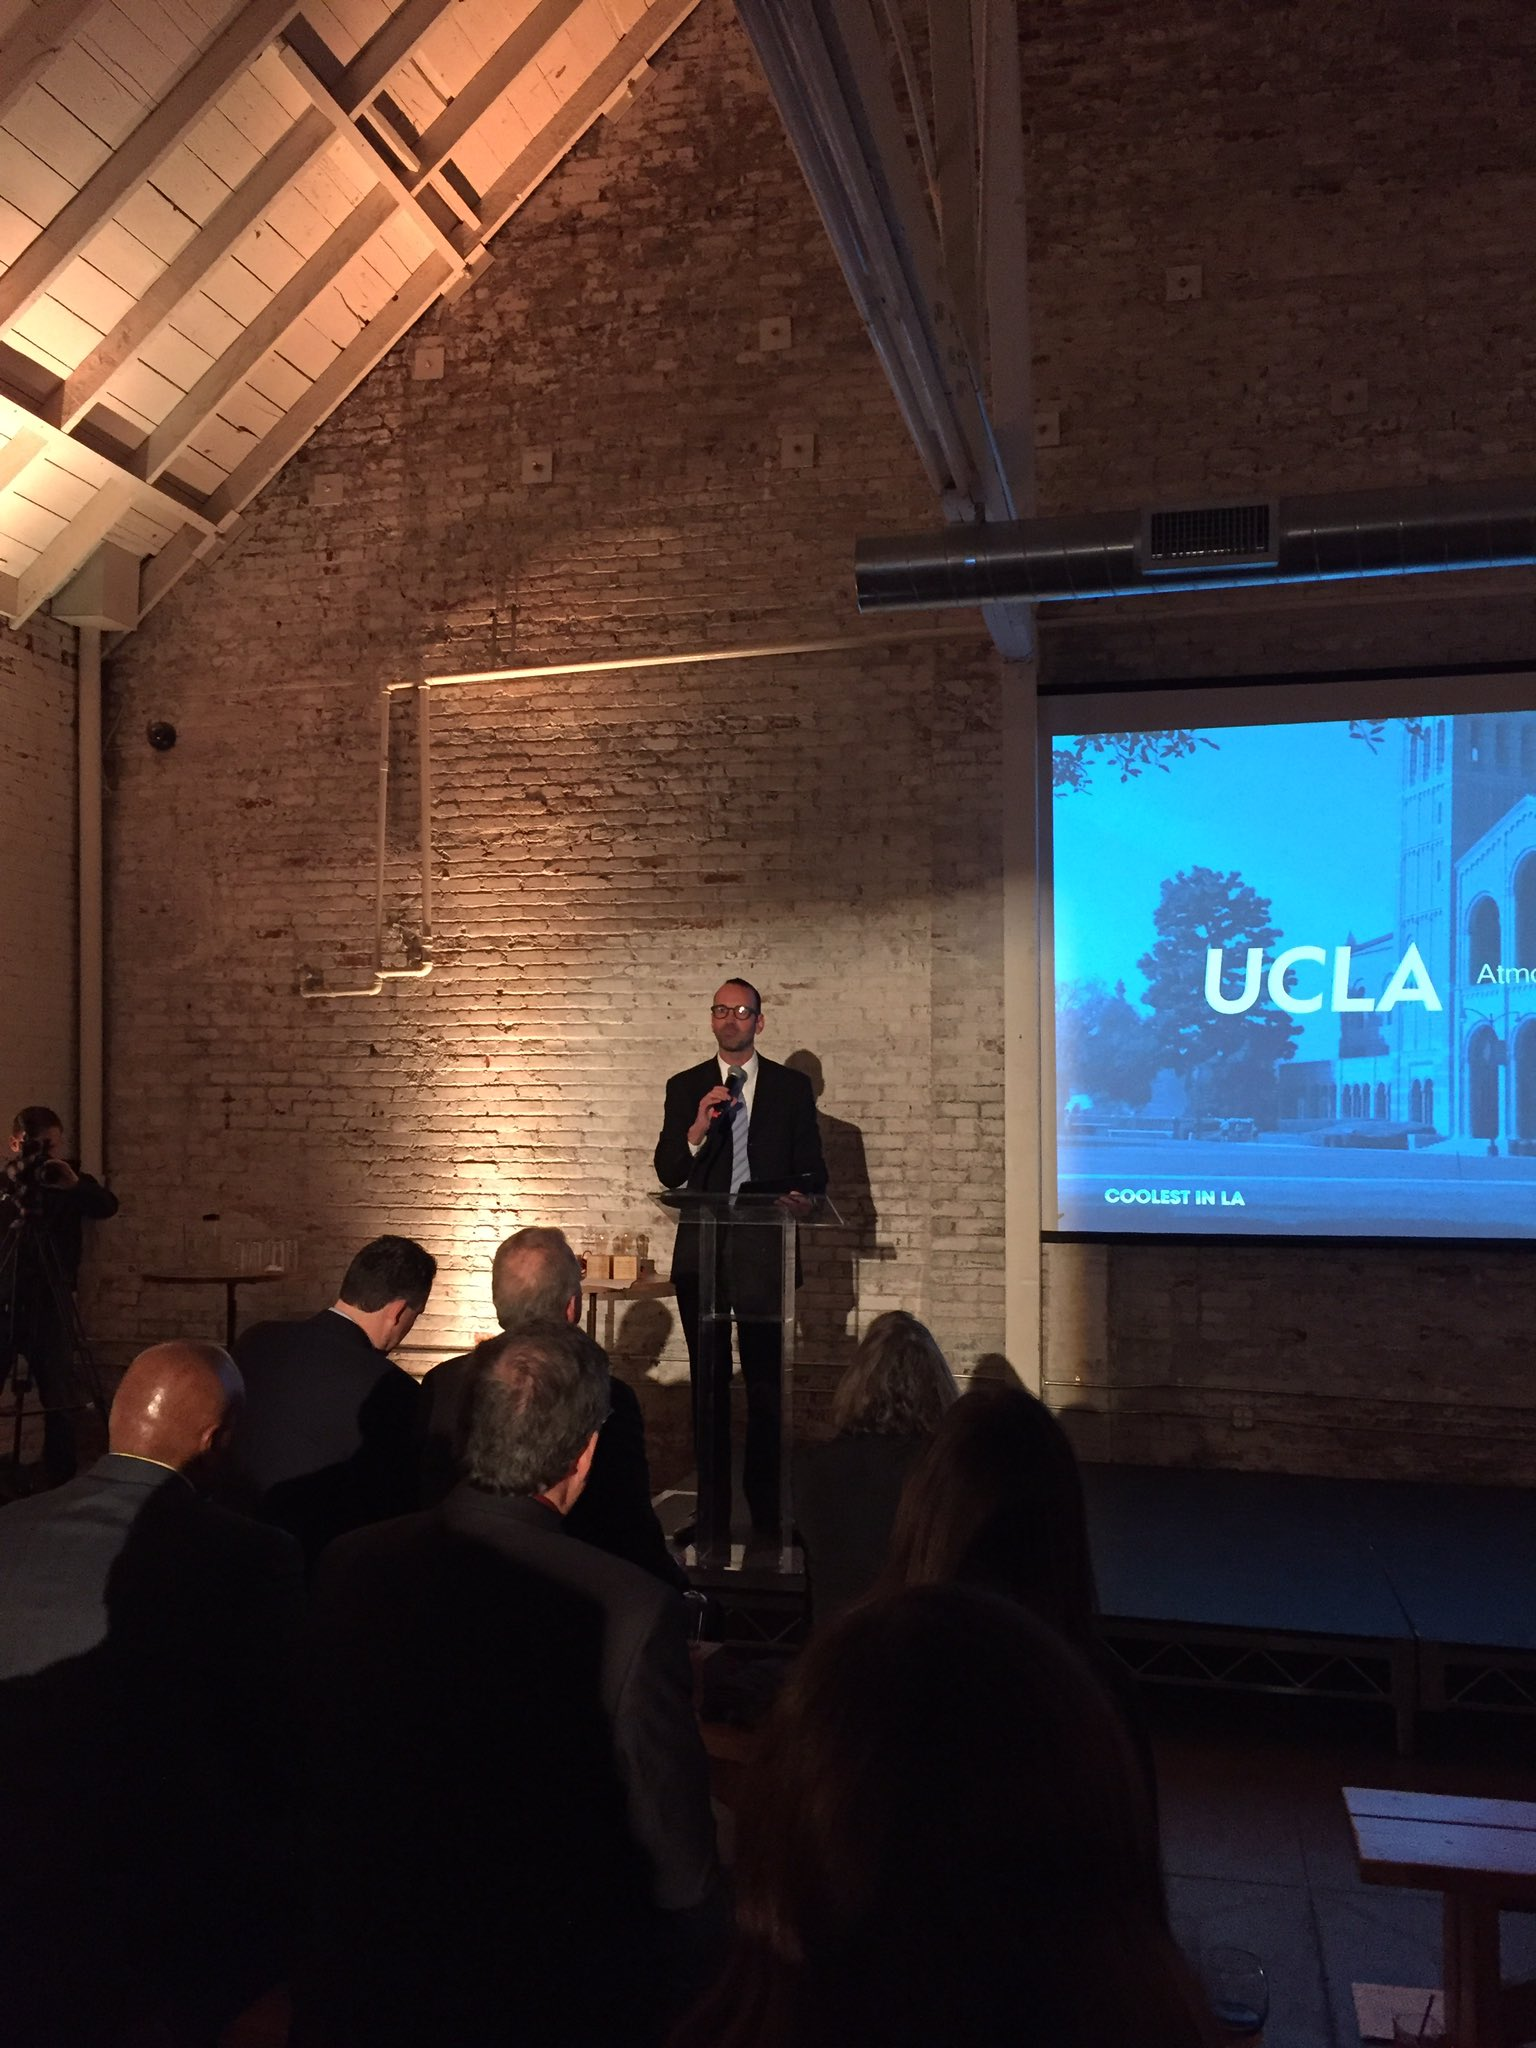 We've seen LA make astonishing progress on #climate since sharing studies to localize climate data - @ucla Professor Alex Hall #coolestinla https://t.co/AXZ0BNJ5Db